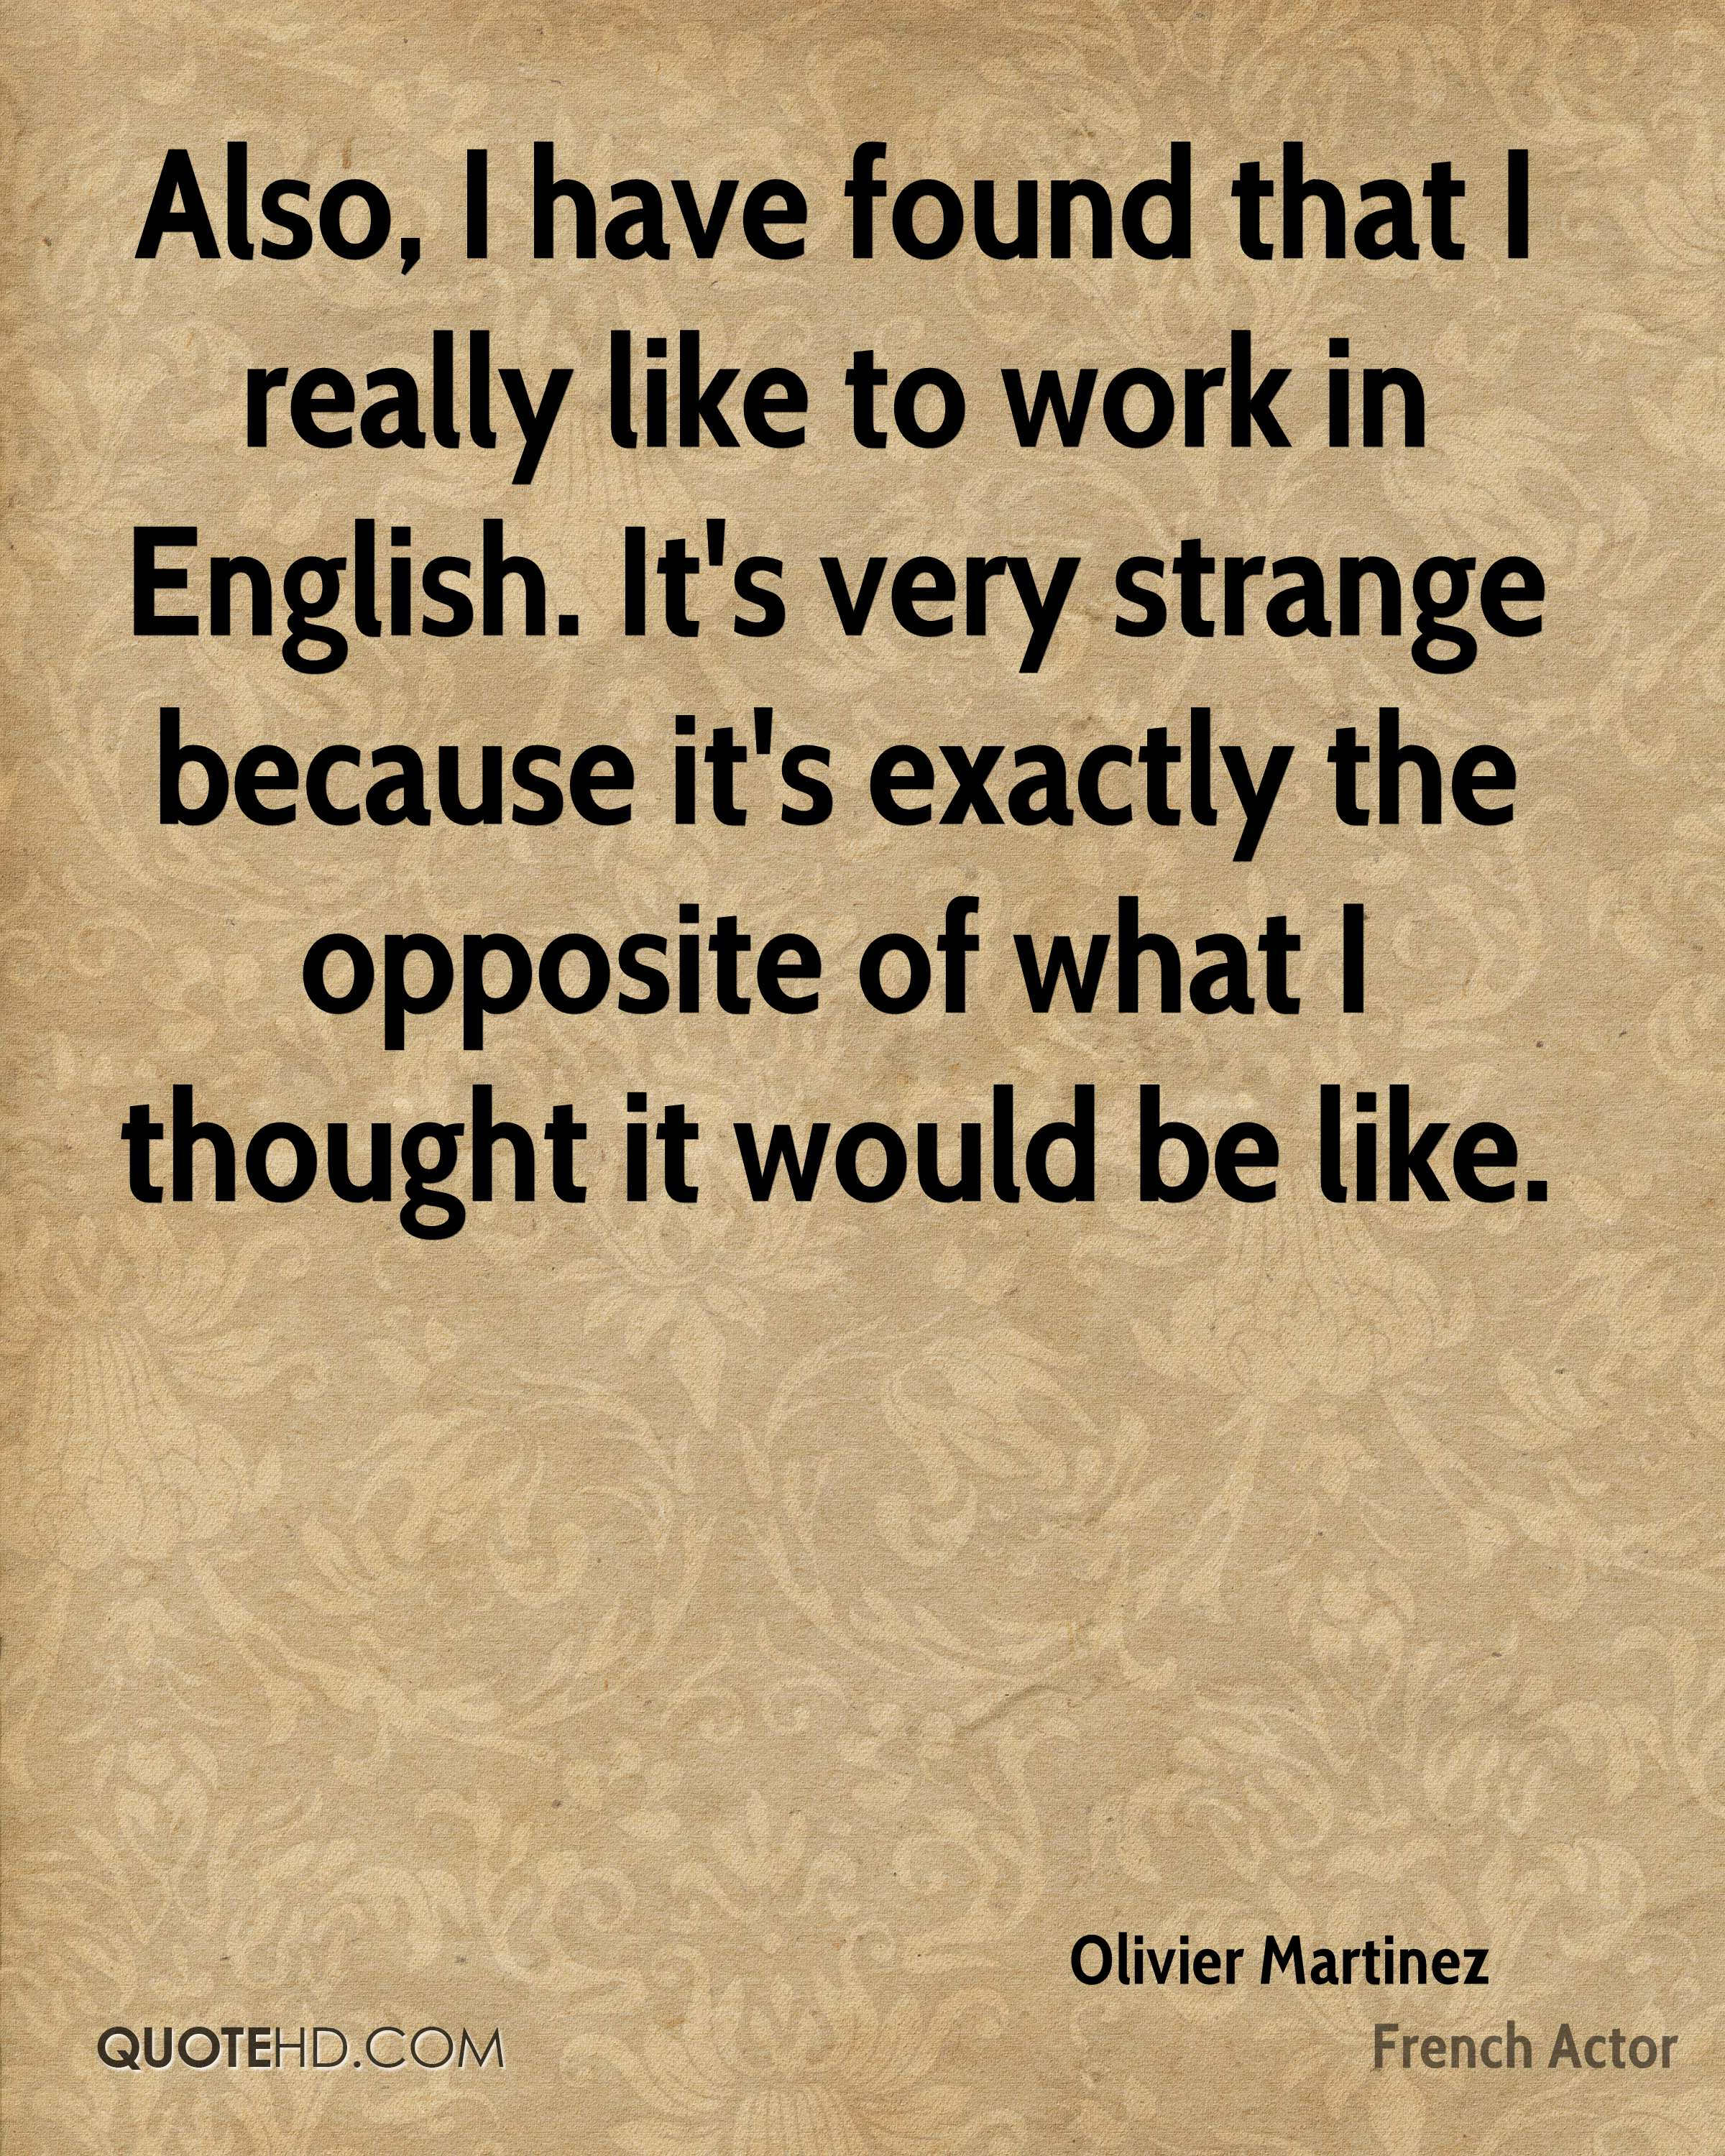 Also, I have found that I really like to work in English. It's very strange because it's exactly the opposite of what I thought it would be like.